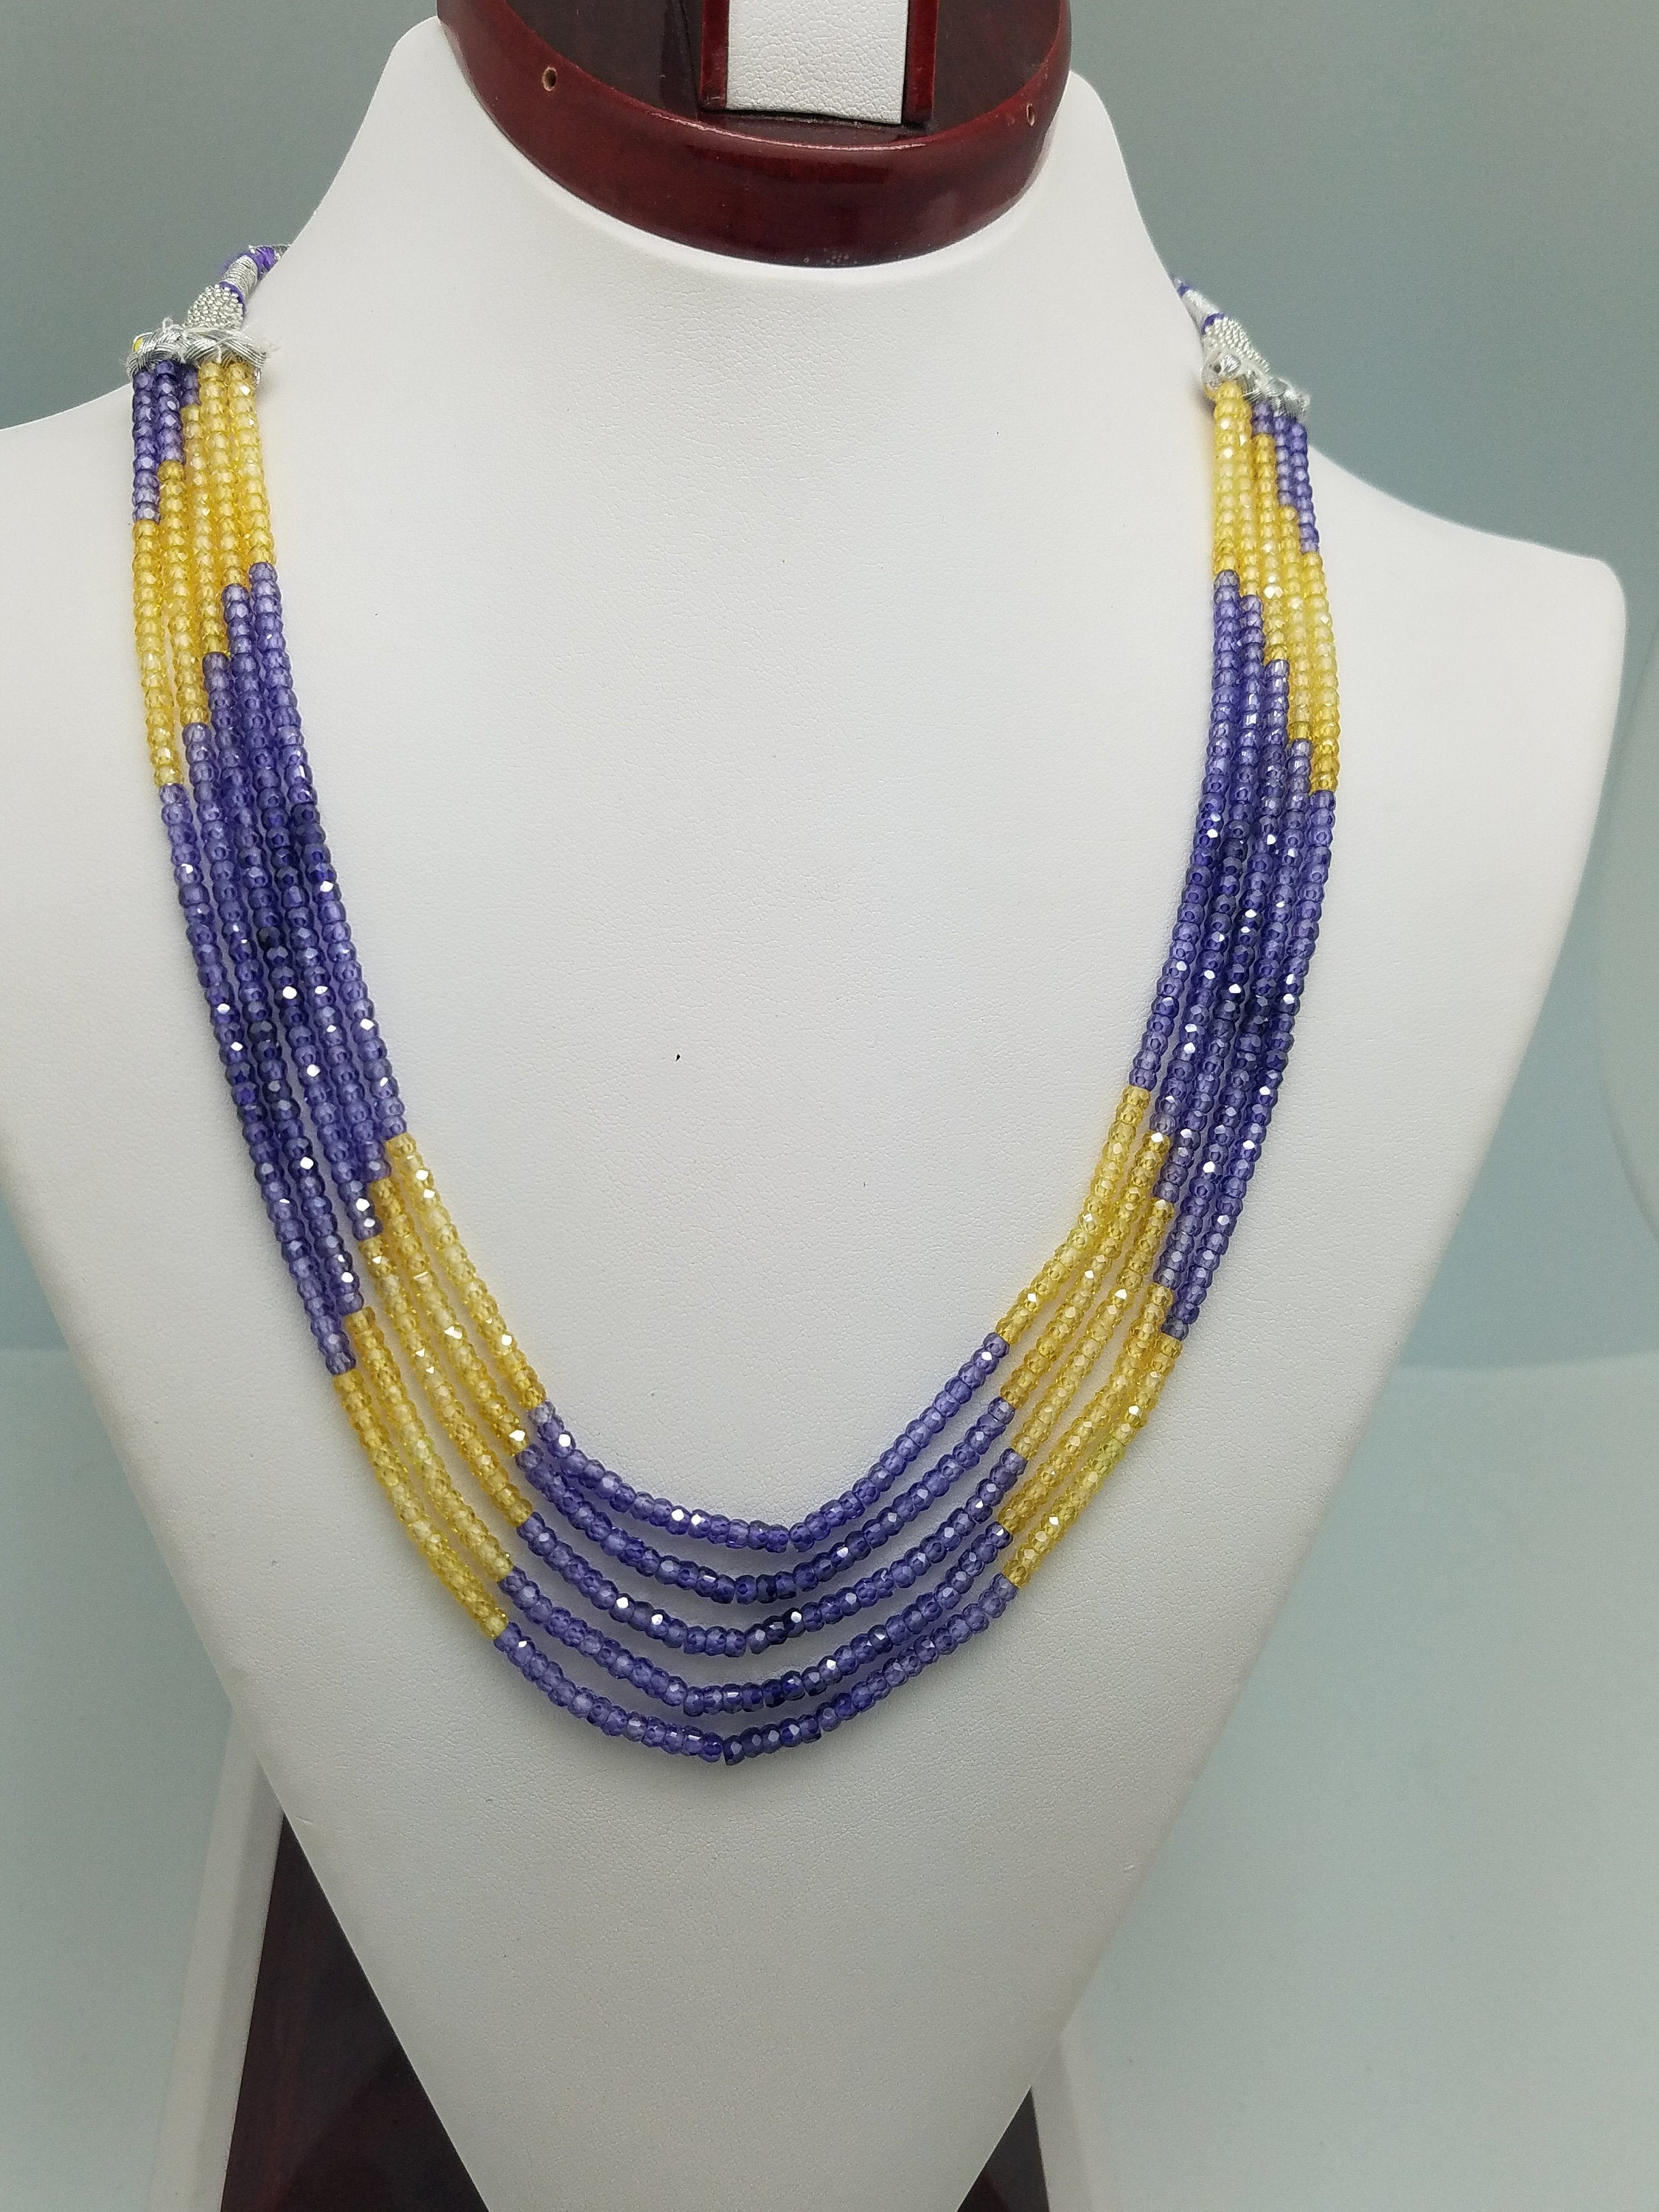 3mm Purple Yellow Shaded CZ Faceted Beaded Necklace - 5 Strands, Gemstone Necklace